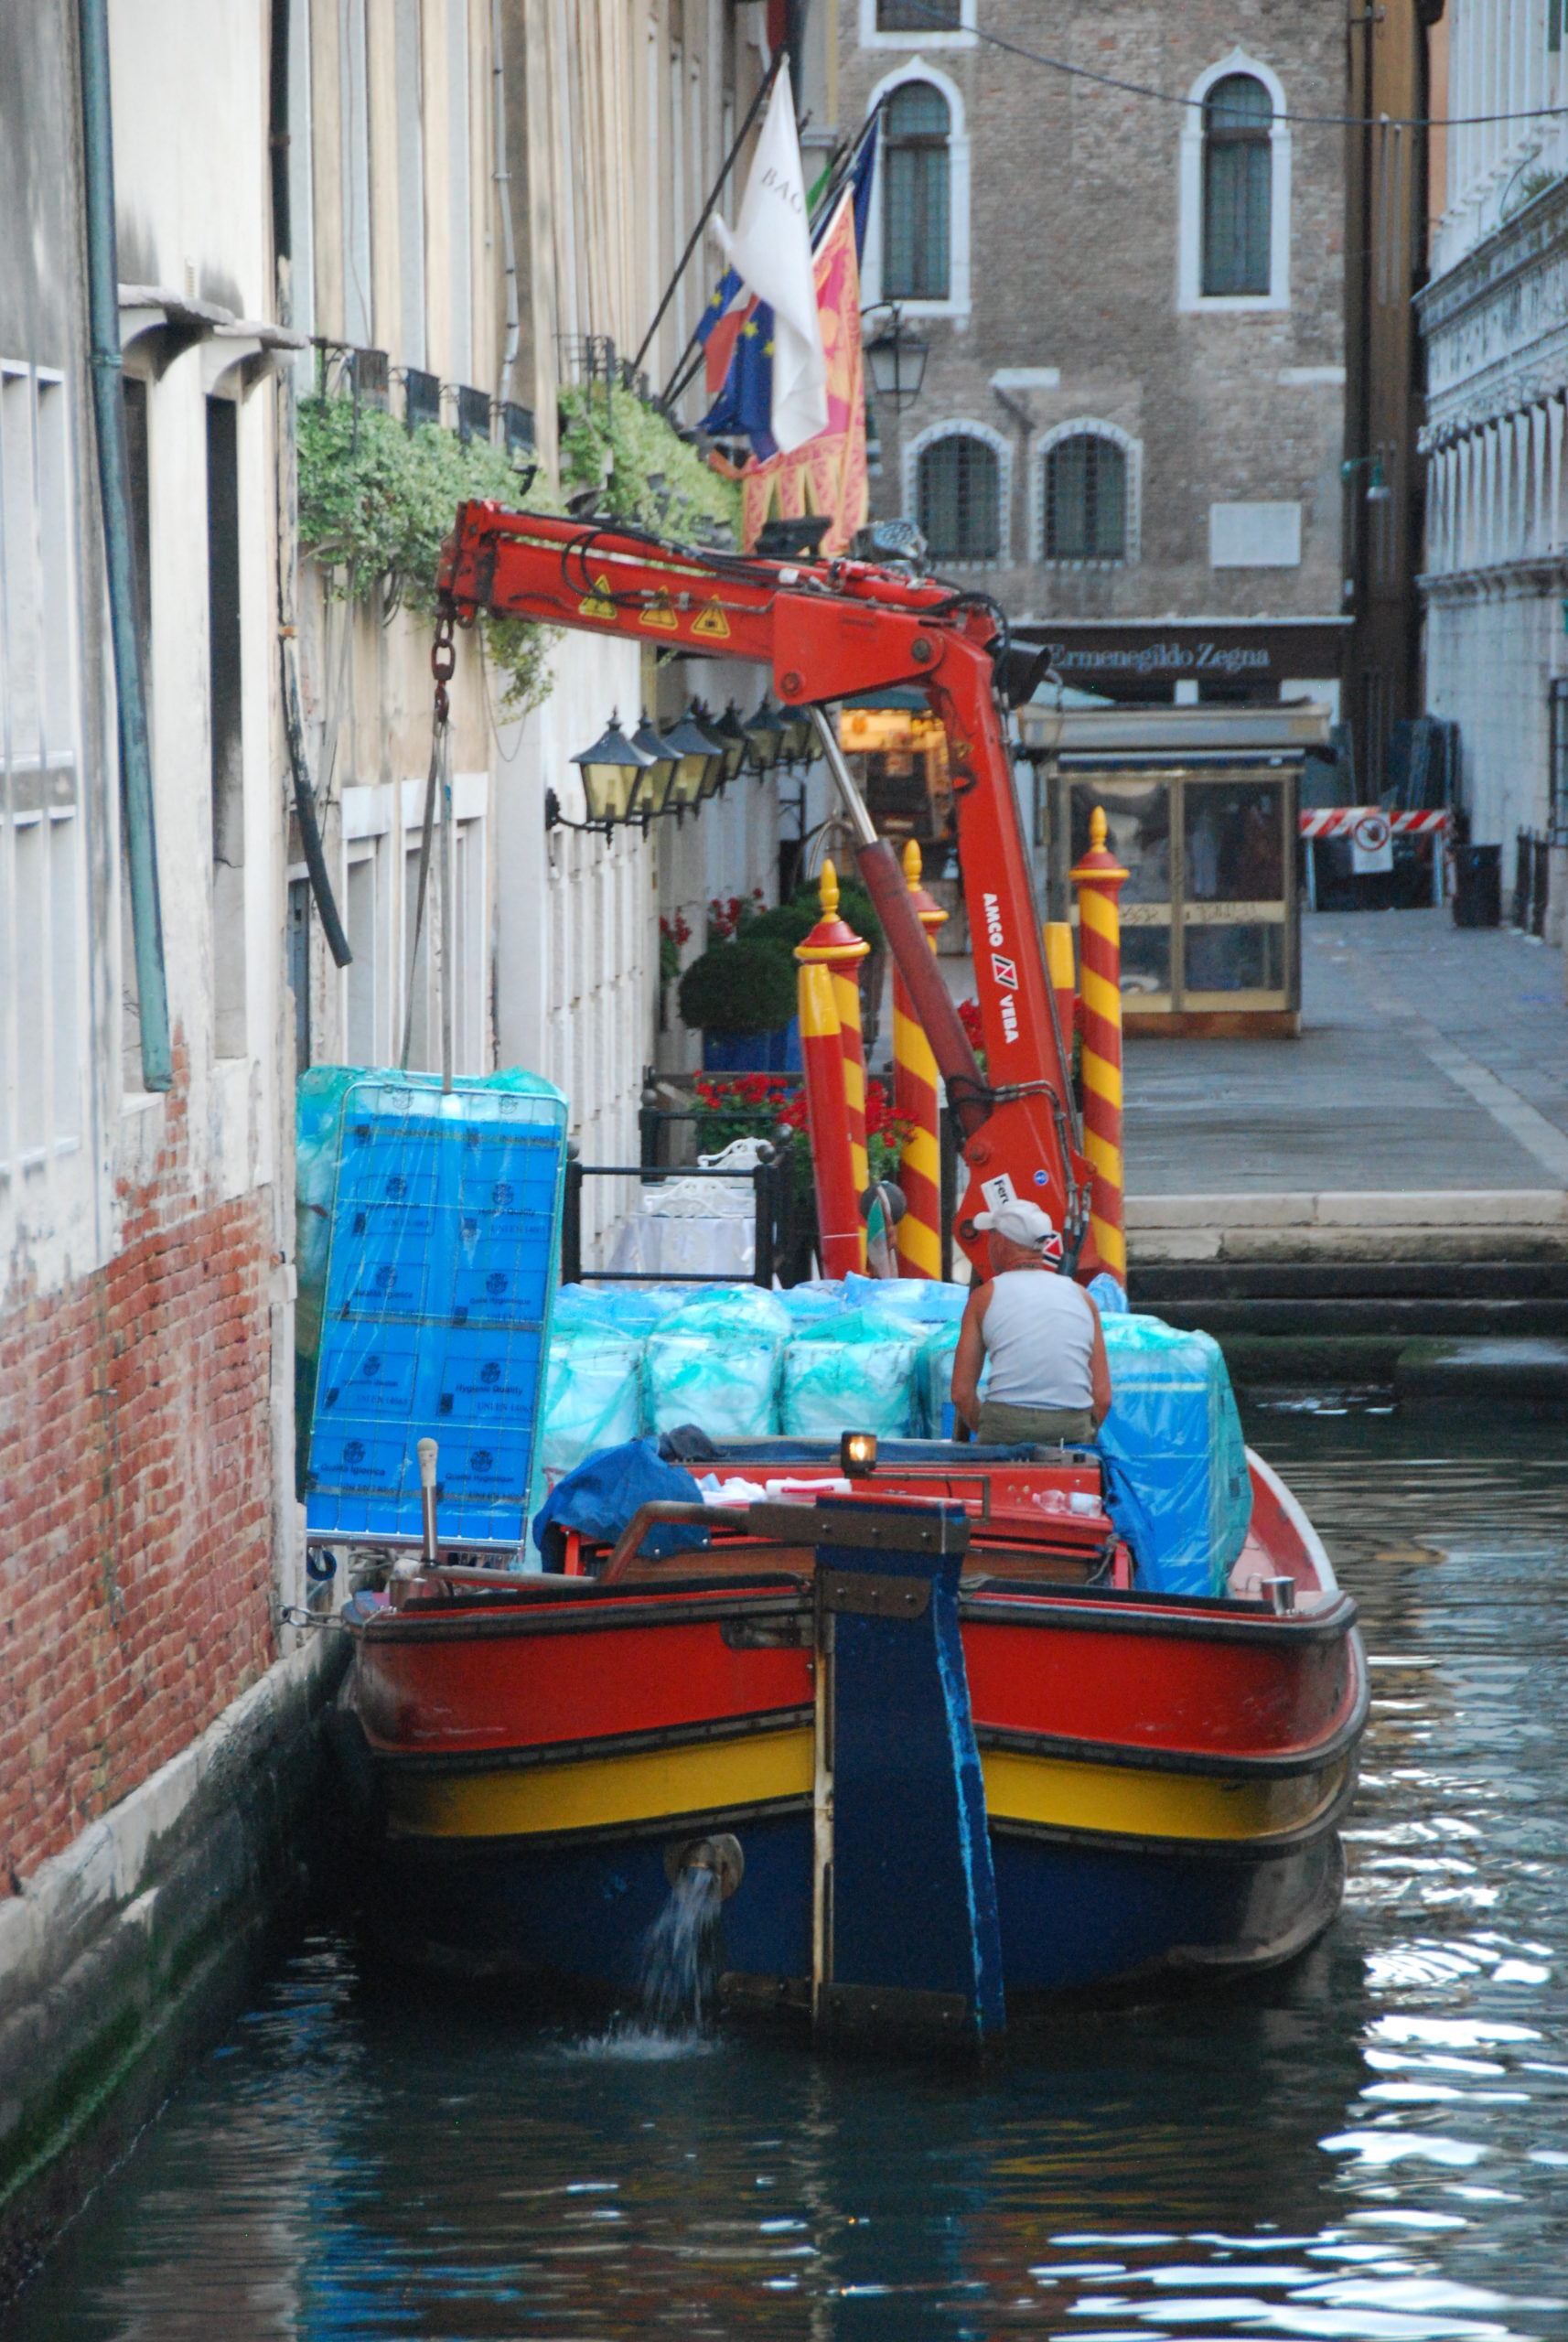 Specialist Vehicles Boat with Crane Venice Italy